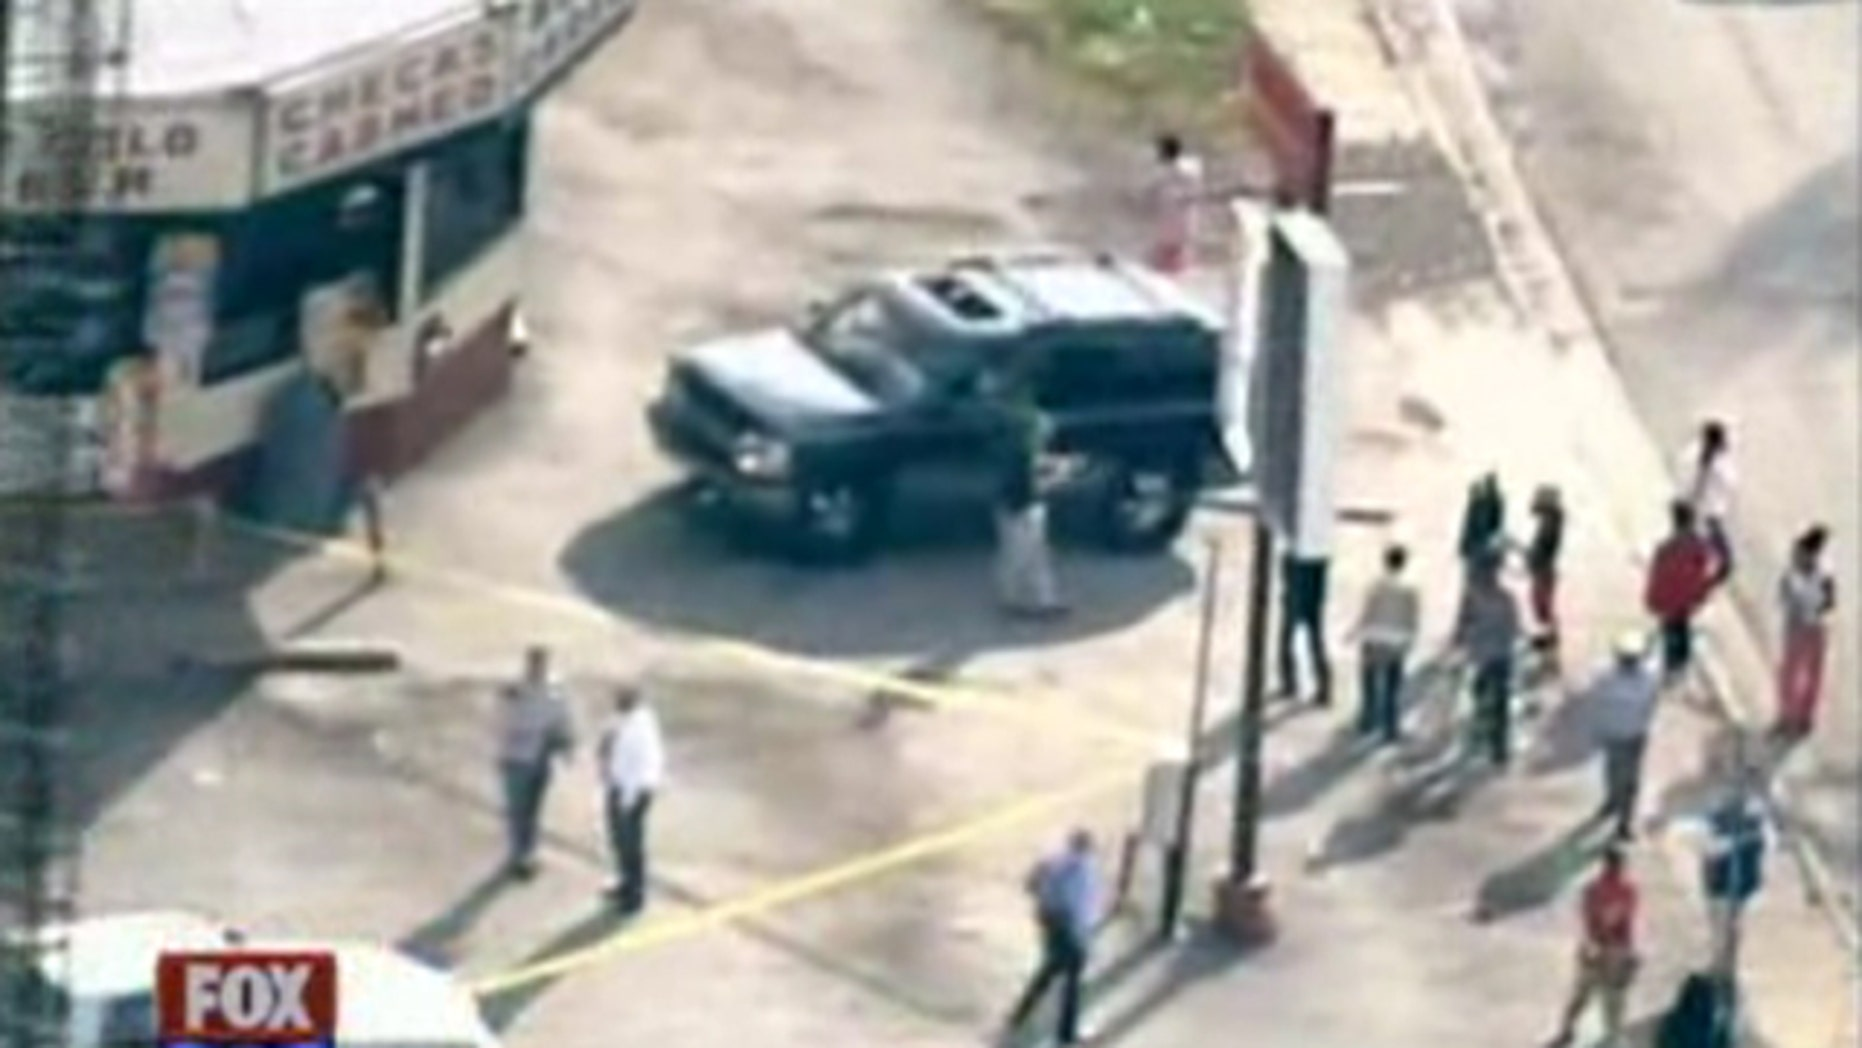 Gunfire reportedly broke out at three separate locations in the town of Wellston, a suburb of St. Louis.